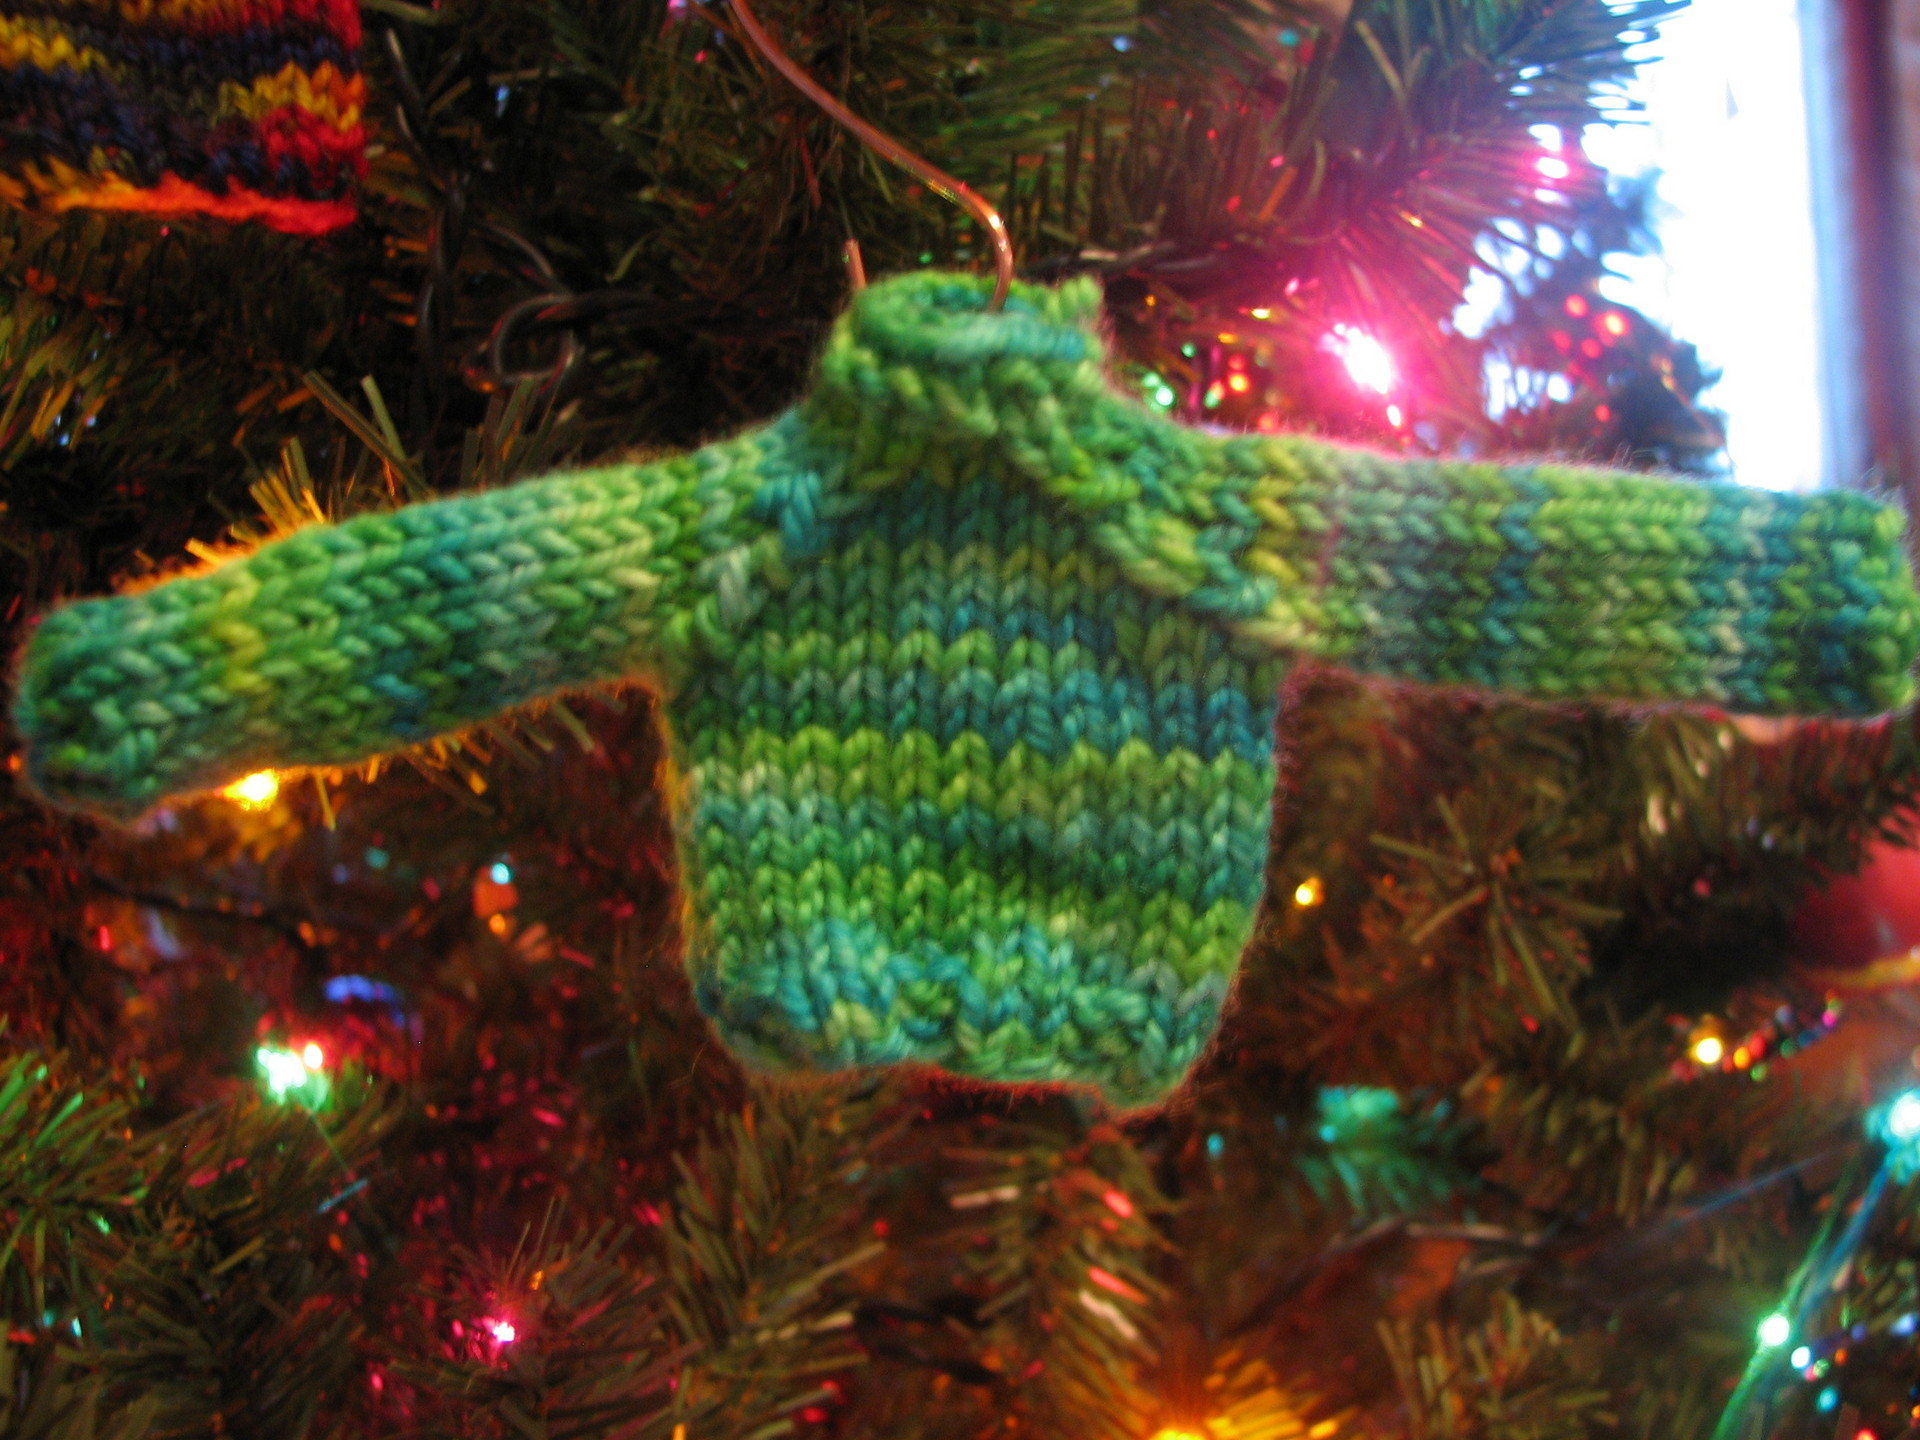 Knitting Images Hd : Knitting images sweater ornament hd wallpaper and